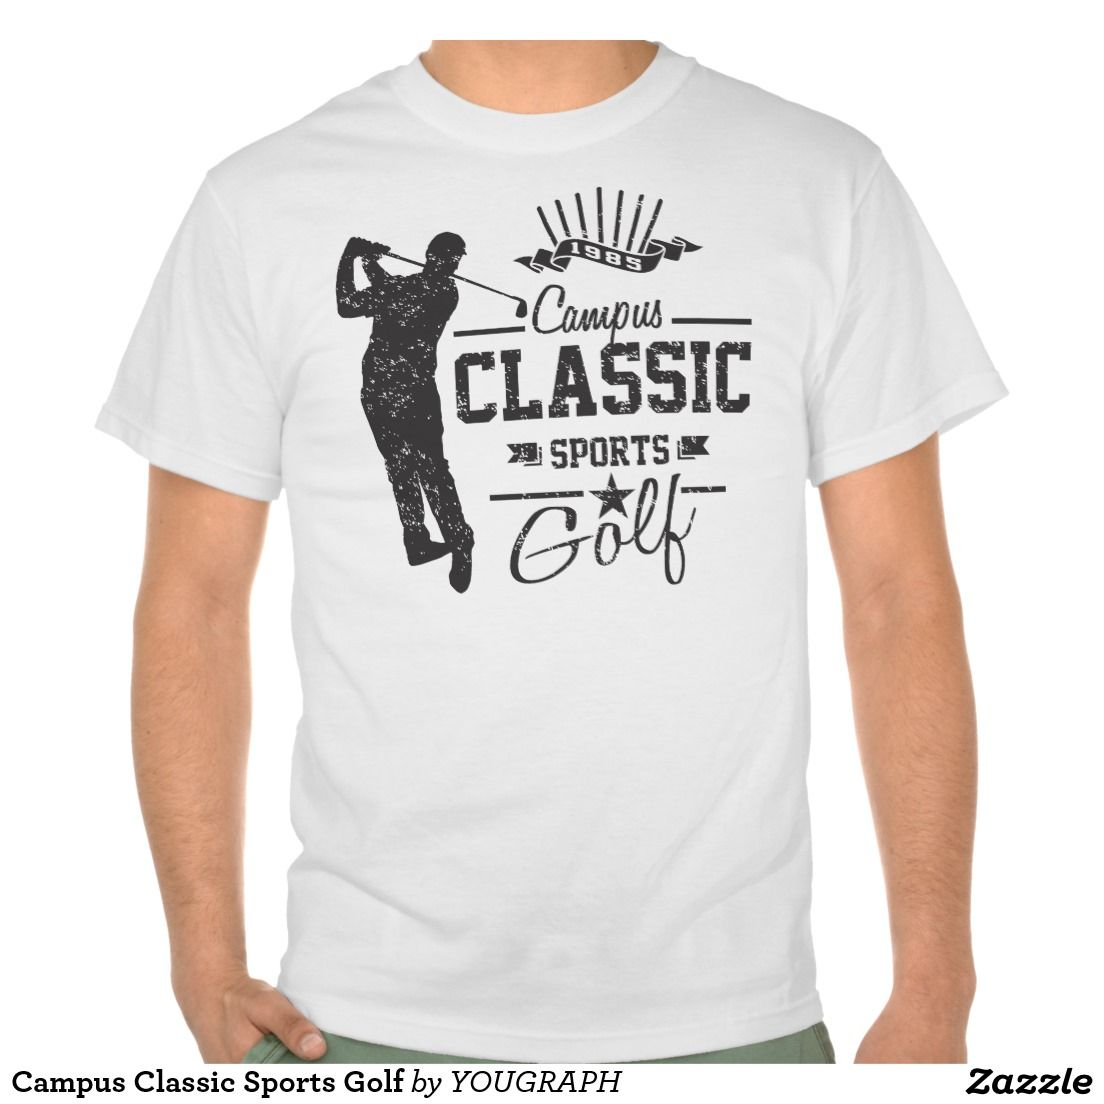 Campus Classic Sports Golf Tee Shirt